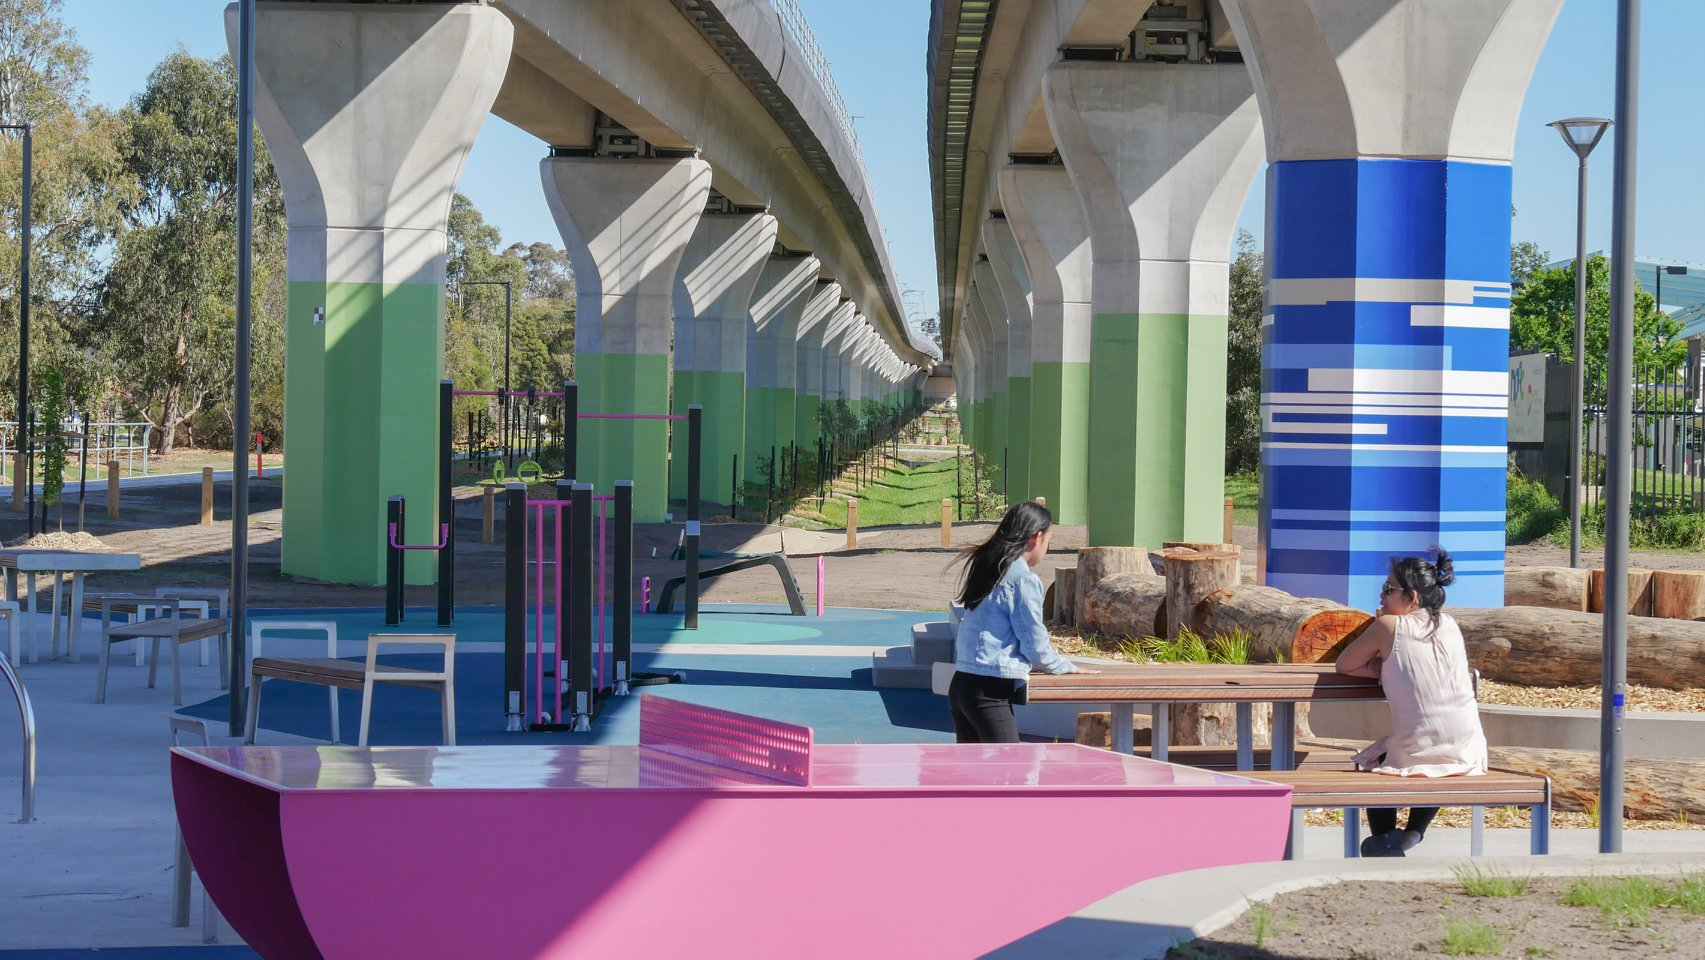 A pink HERO outdoor ping pong table sits under a raised railway line next to fitness equipment and a park bench. A mother and daughter sit on the bench in the new park space that has a blue and pink theme.